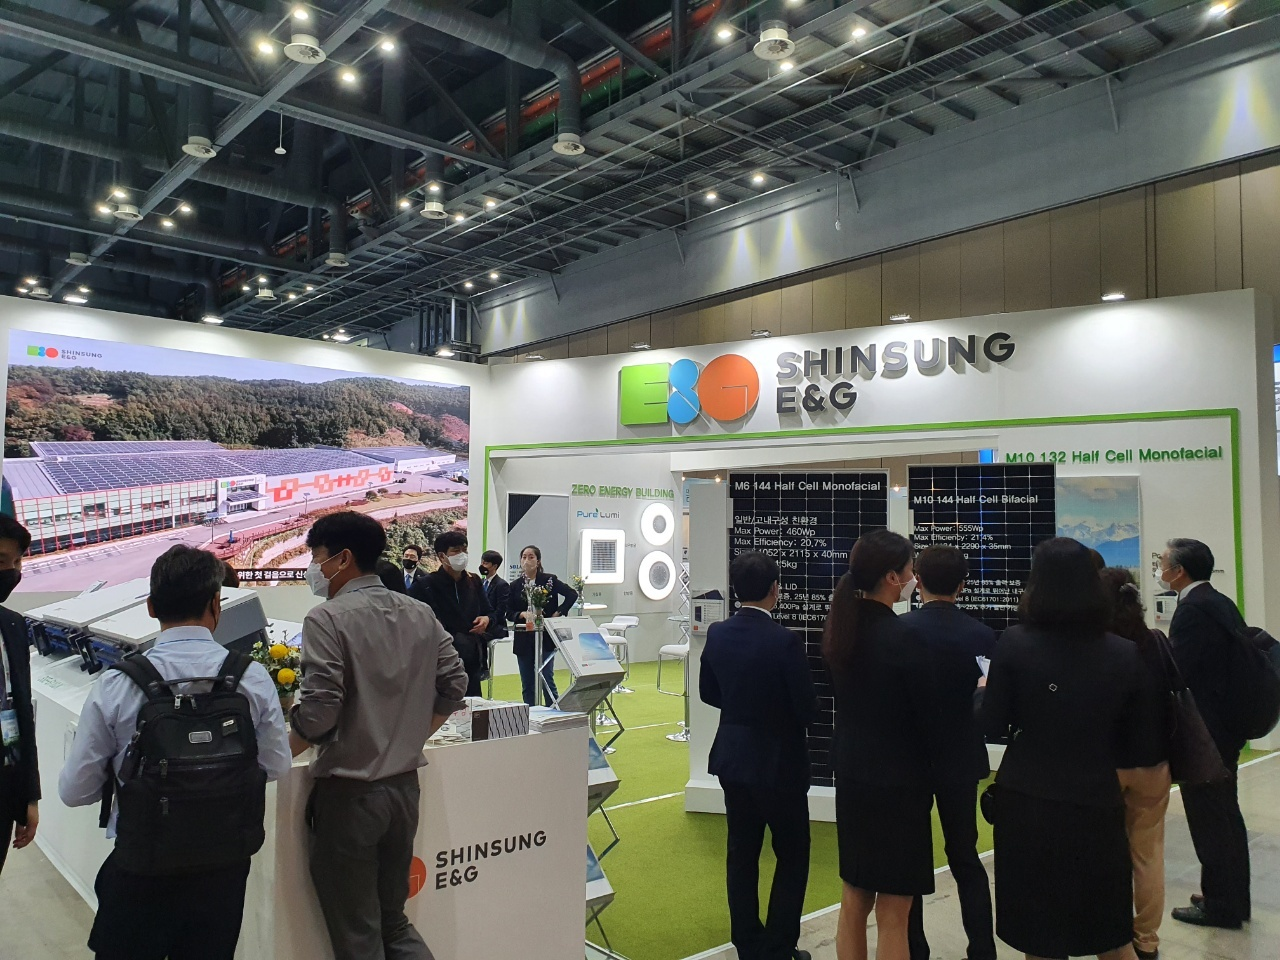 Shinsung E&G's booth (By Kim Byung-wook/The Korea Herald)